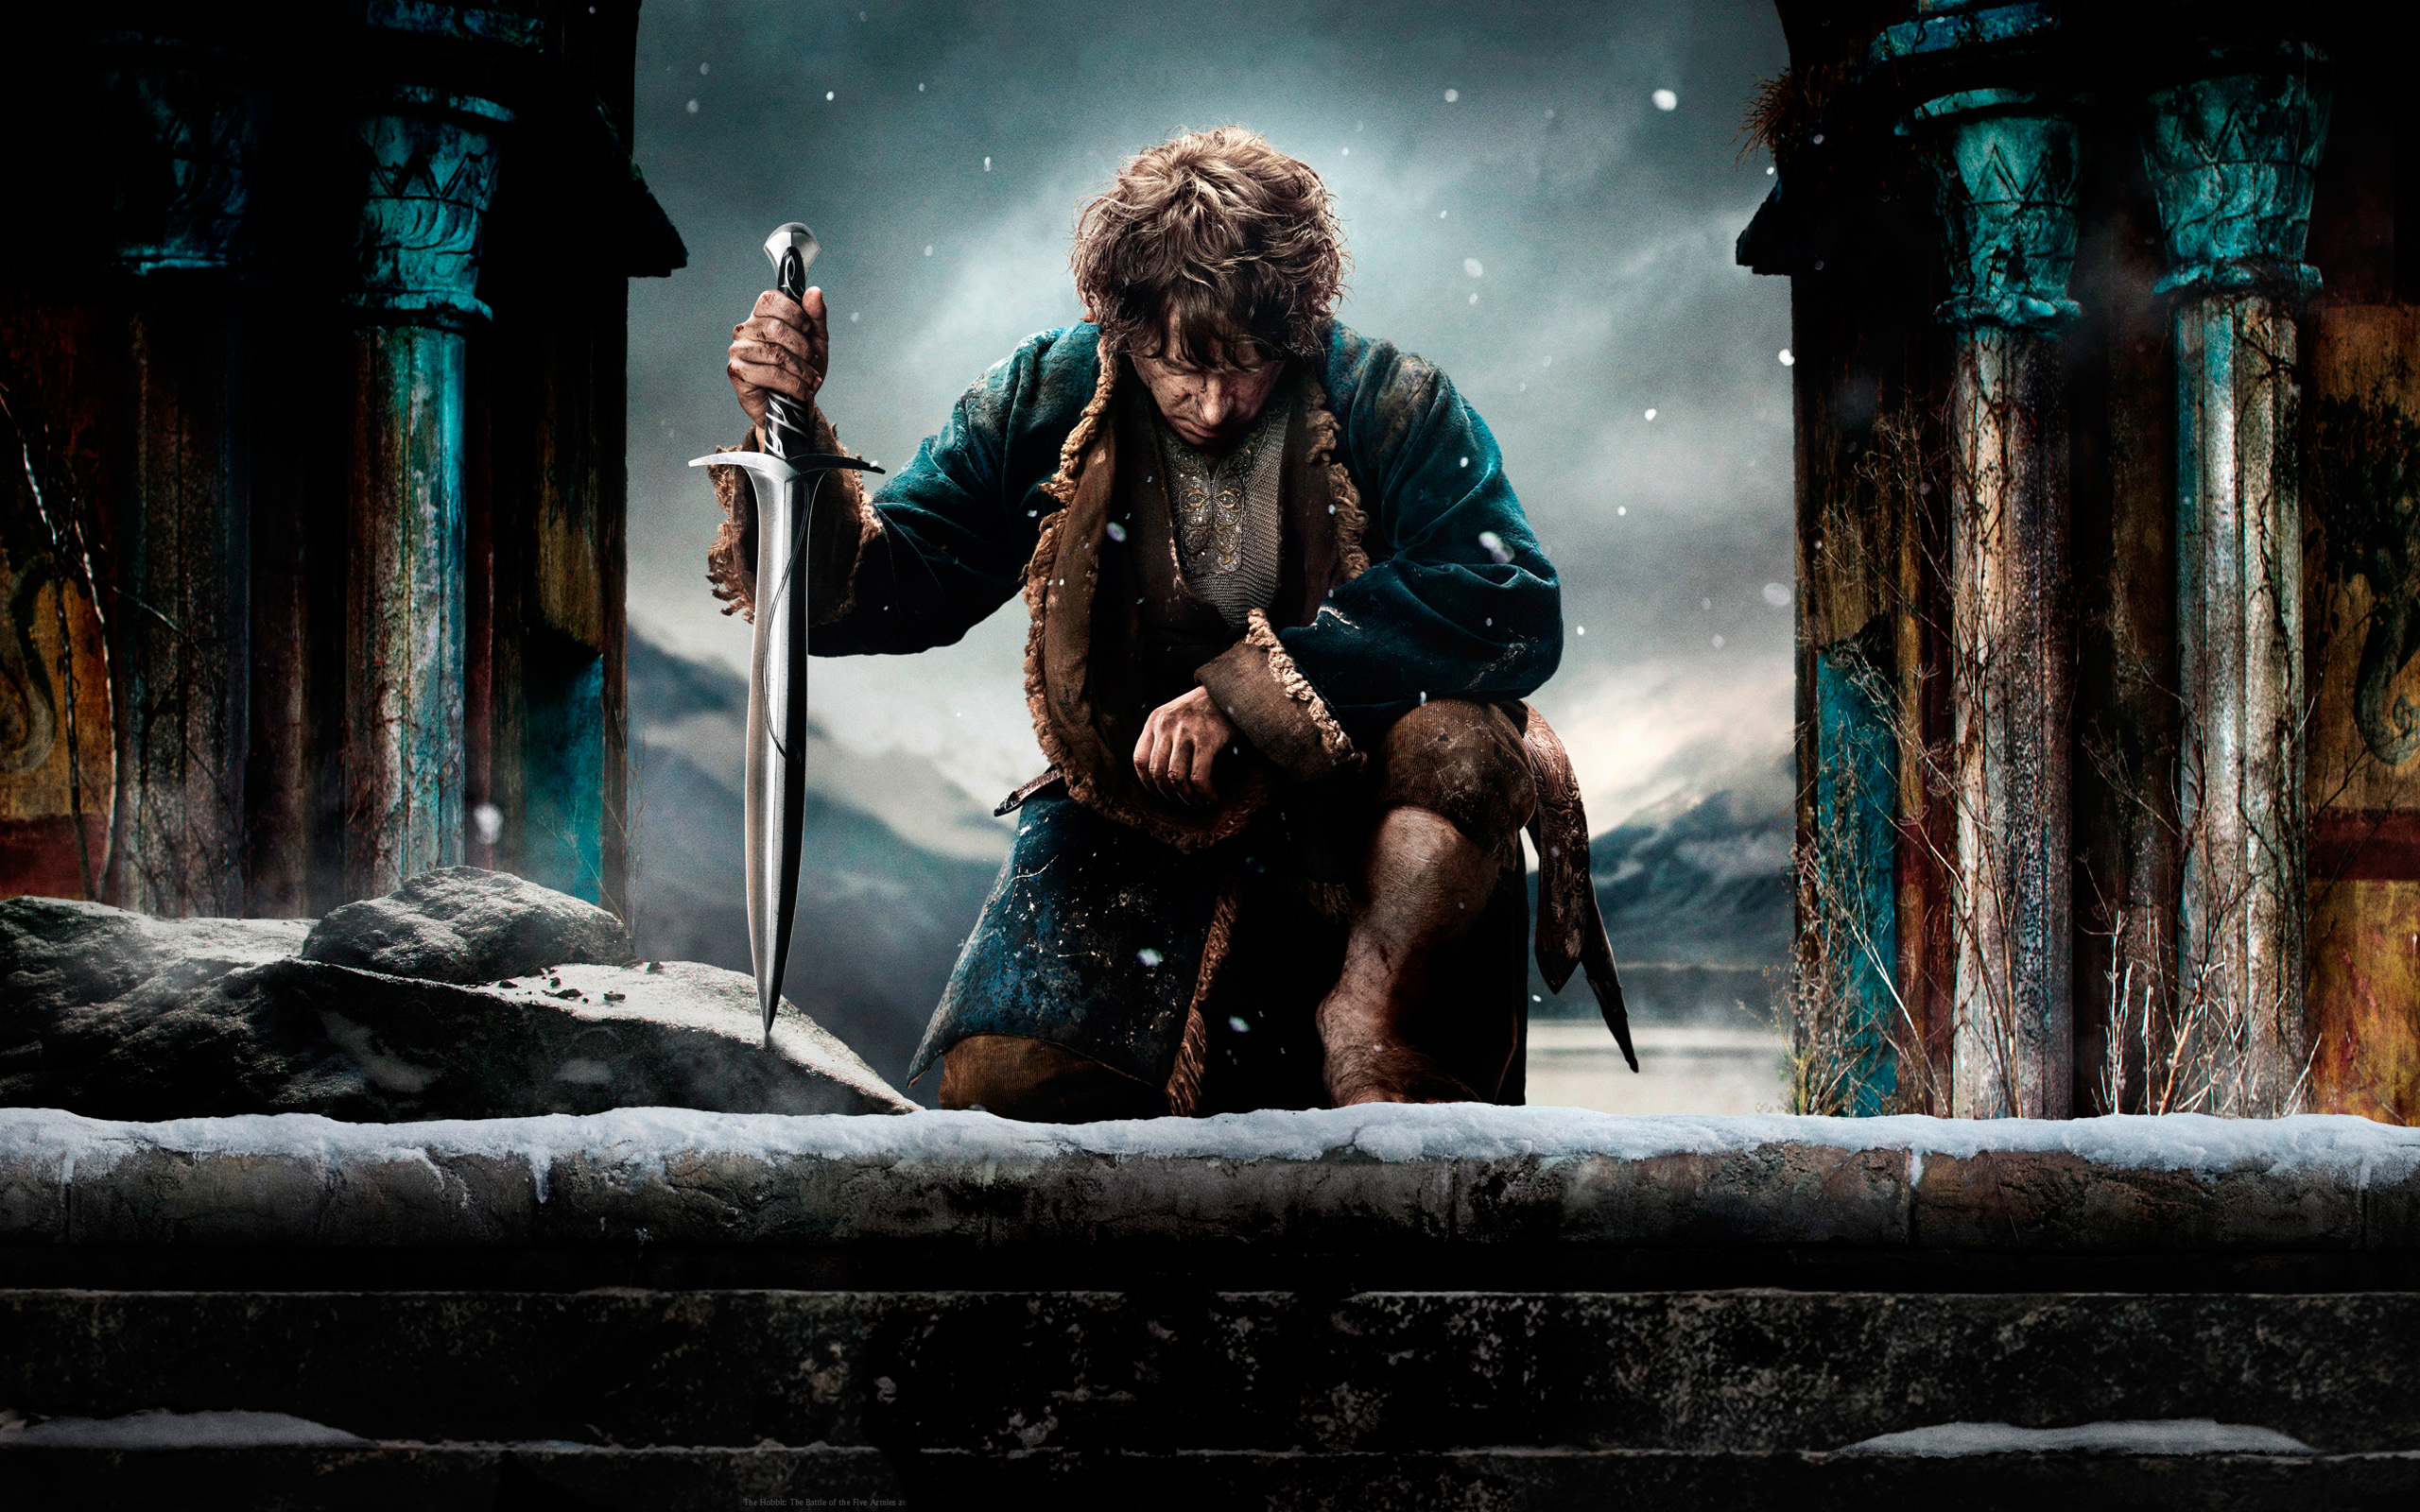 the_hobbit_the_battle_of_the_five_armies_movie